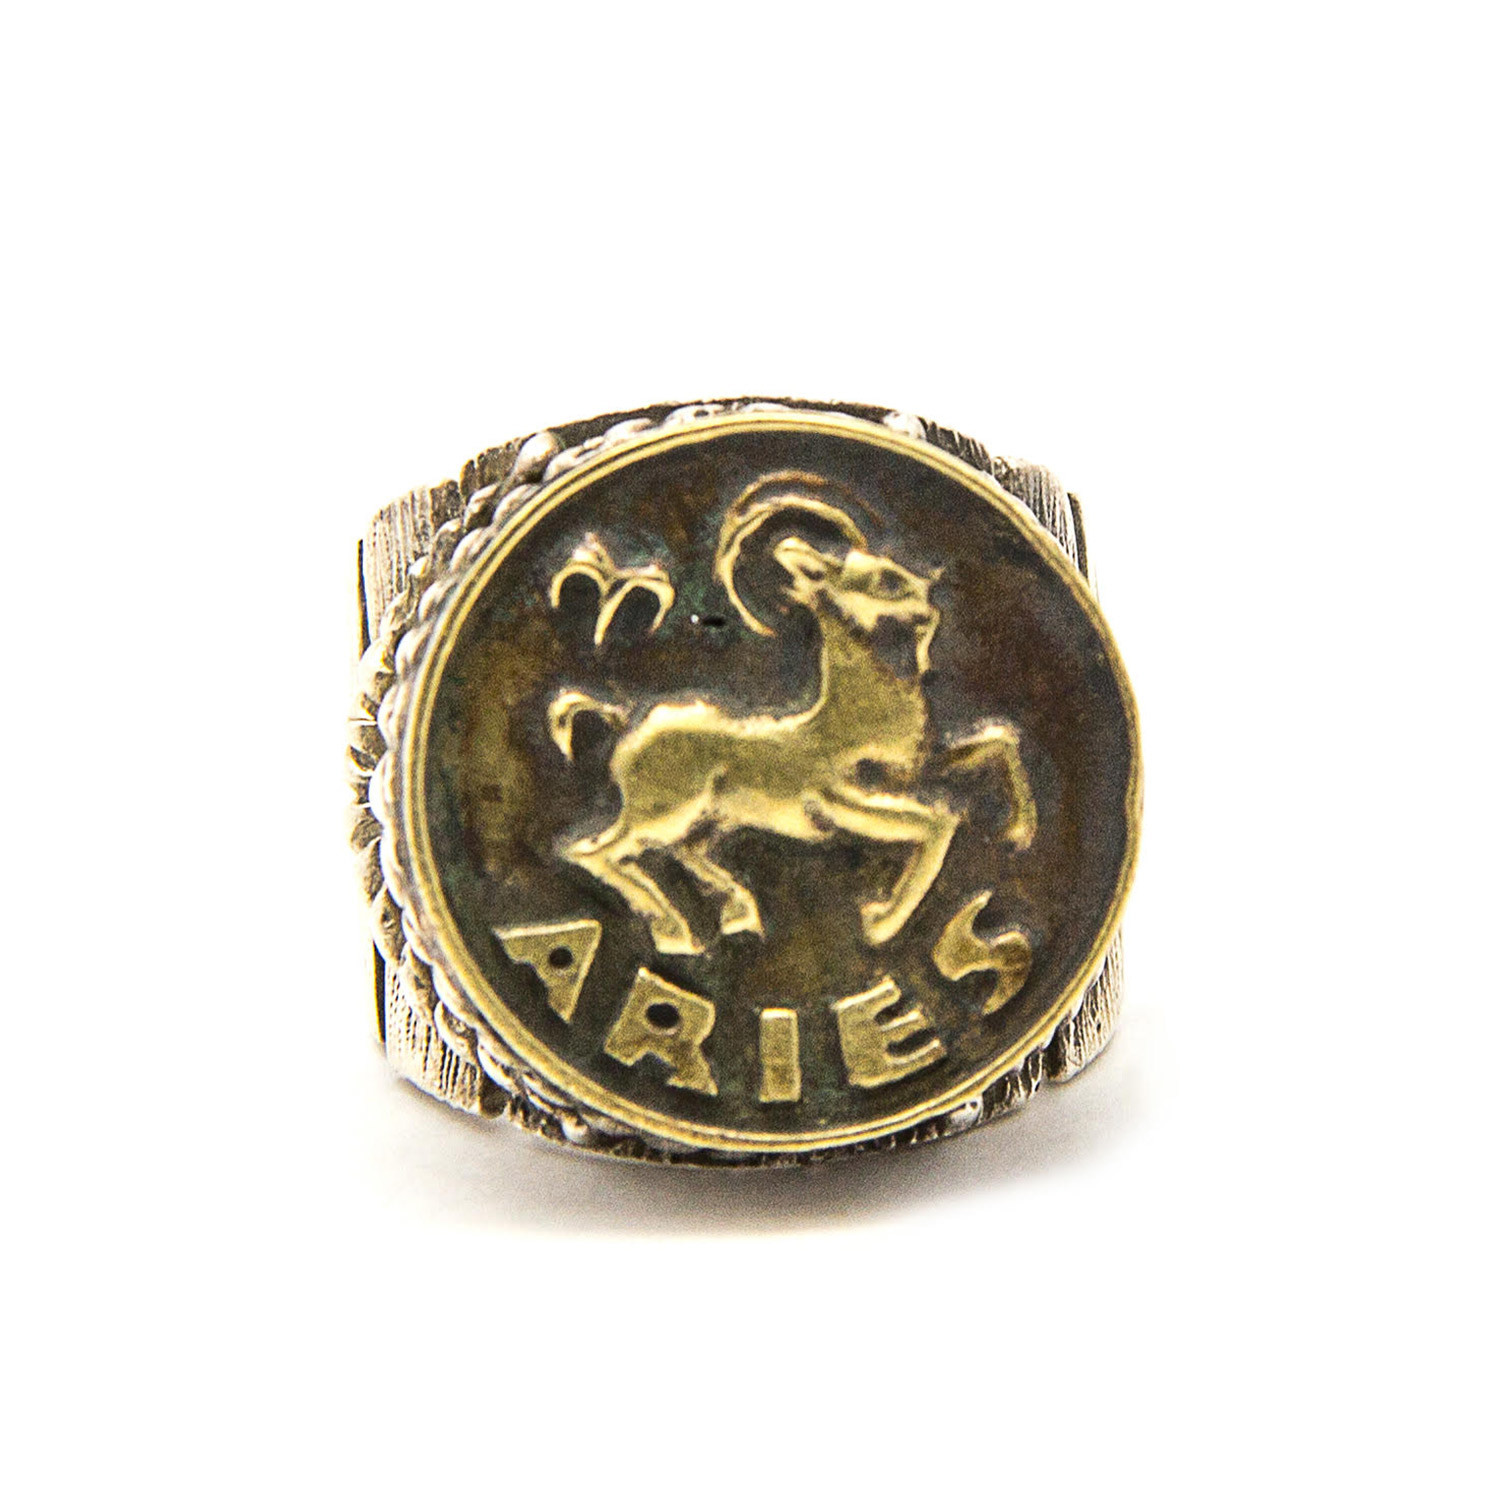 aries ring size 7 noa tam touch of modern